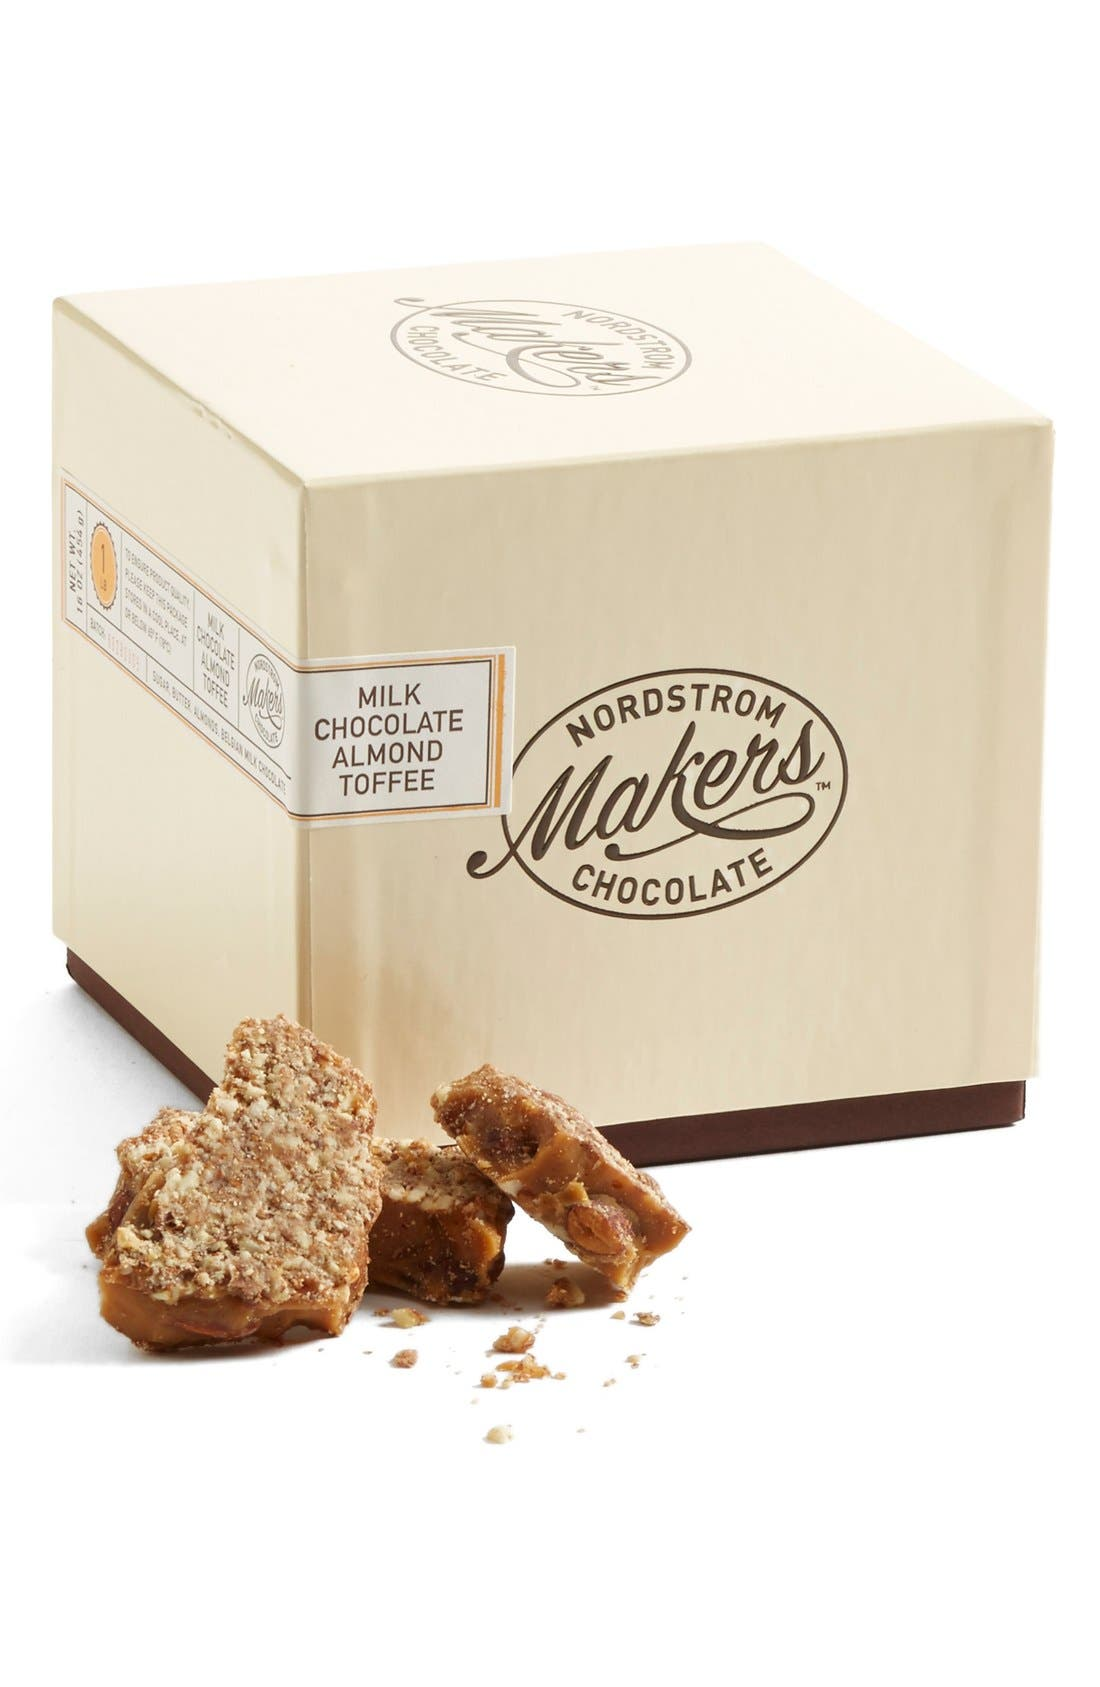 Nordstrom Makers Chocolate Milk Chocolate Almond Toffee